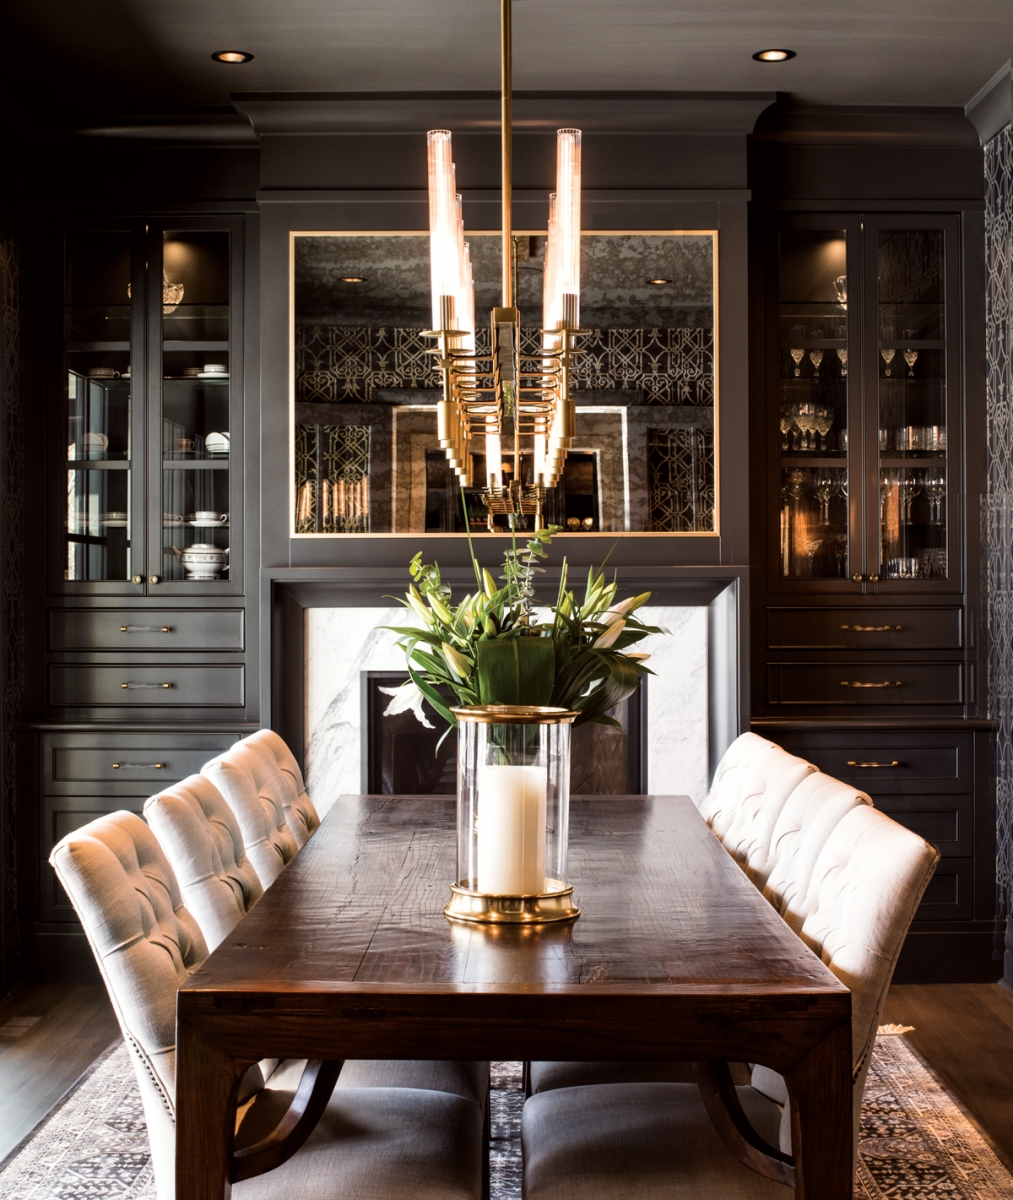 The dining room's traditional details, such as the smoked-glass mirror over the fireplace and antique table from Hinchcliff & Lee create a sense of timeless elegance.